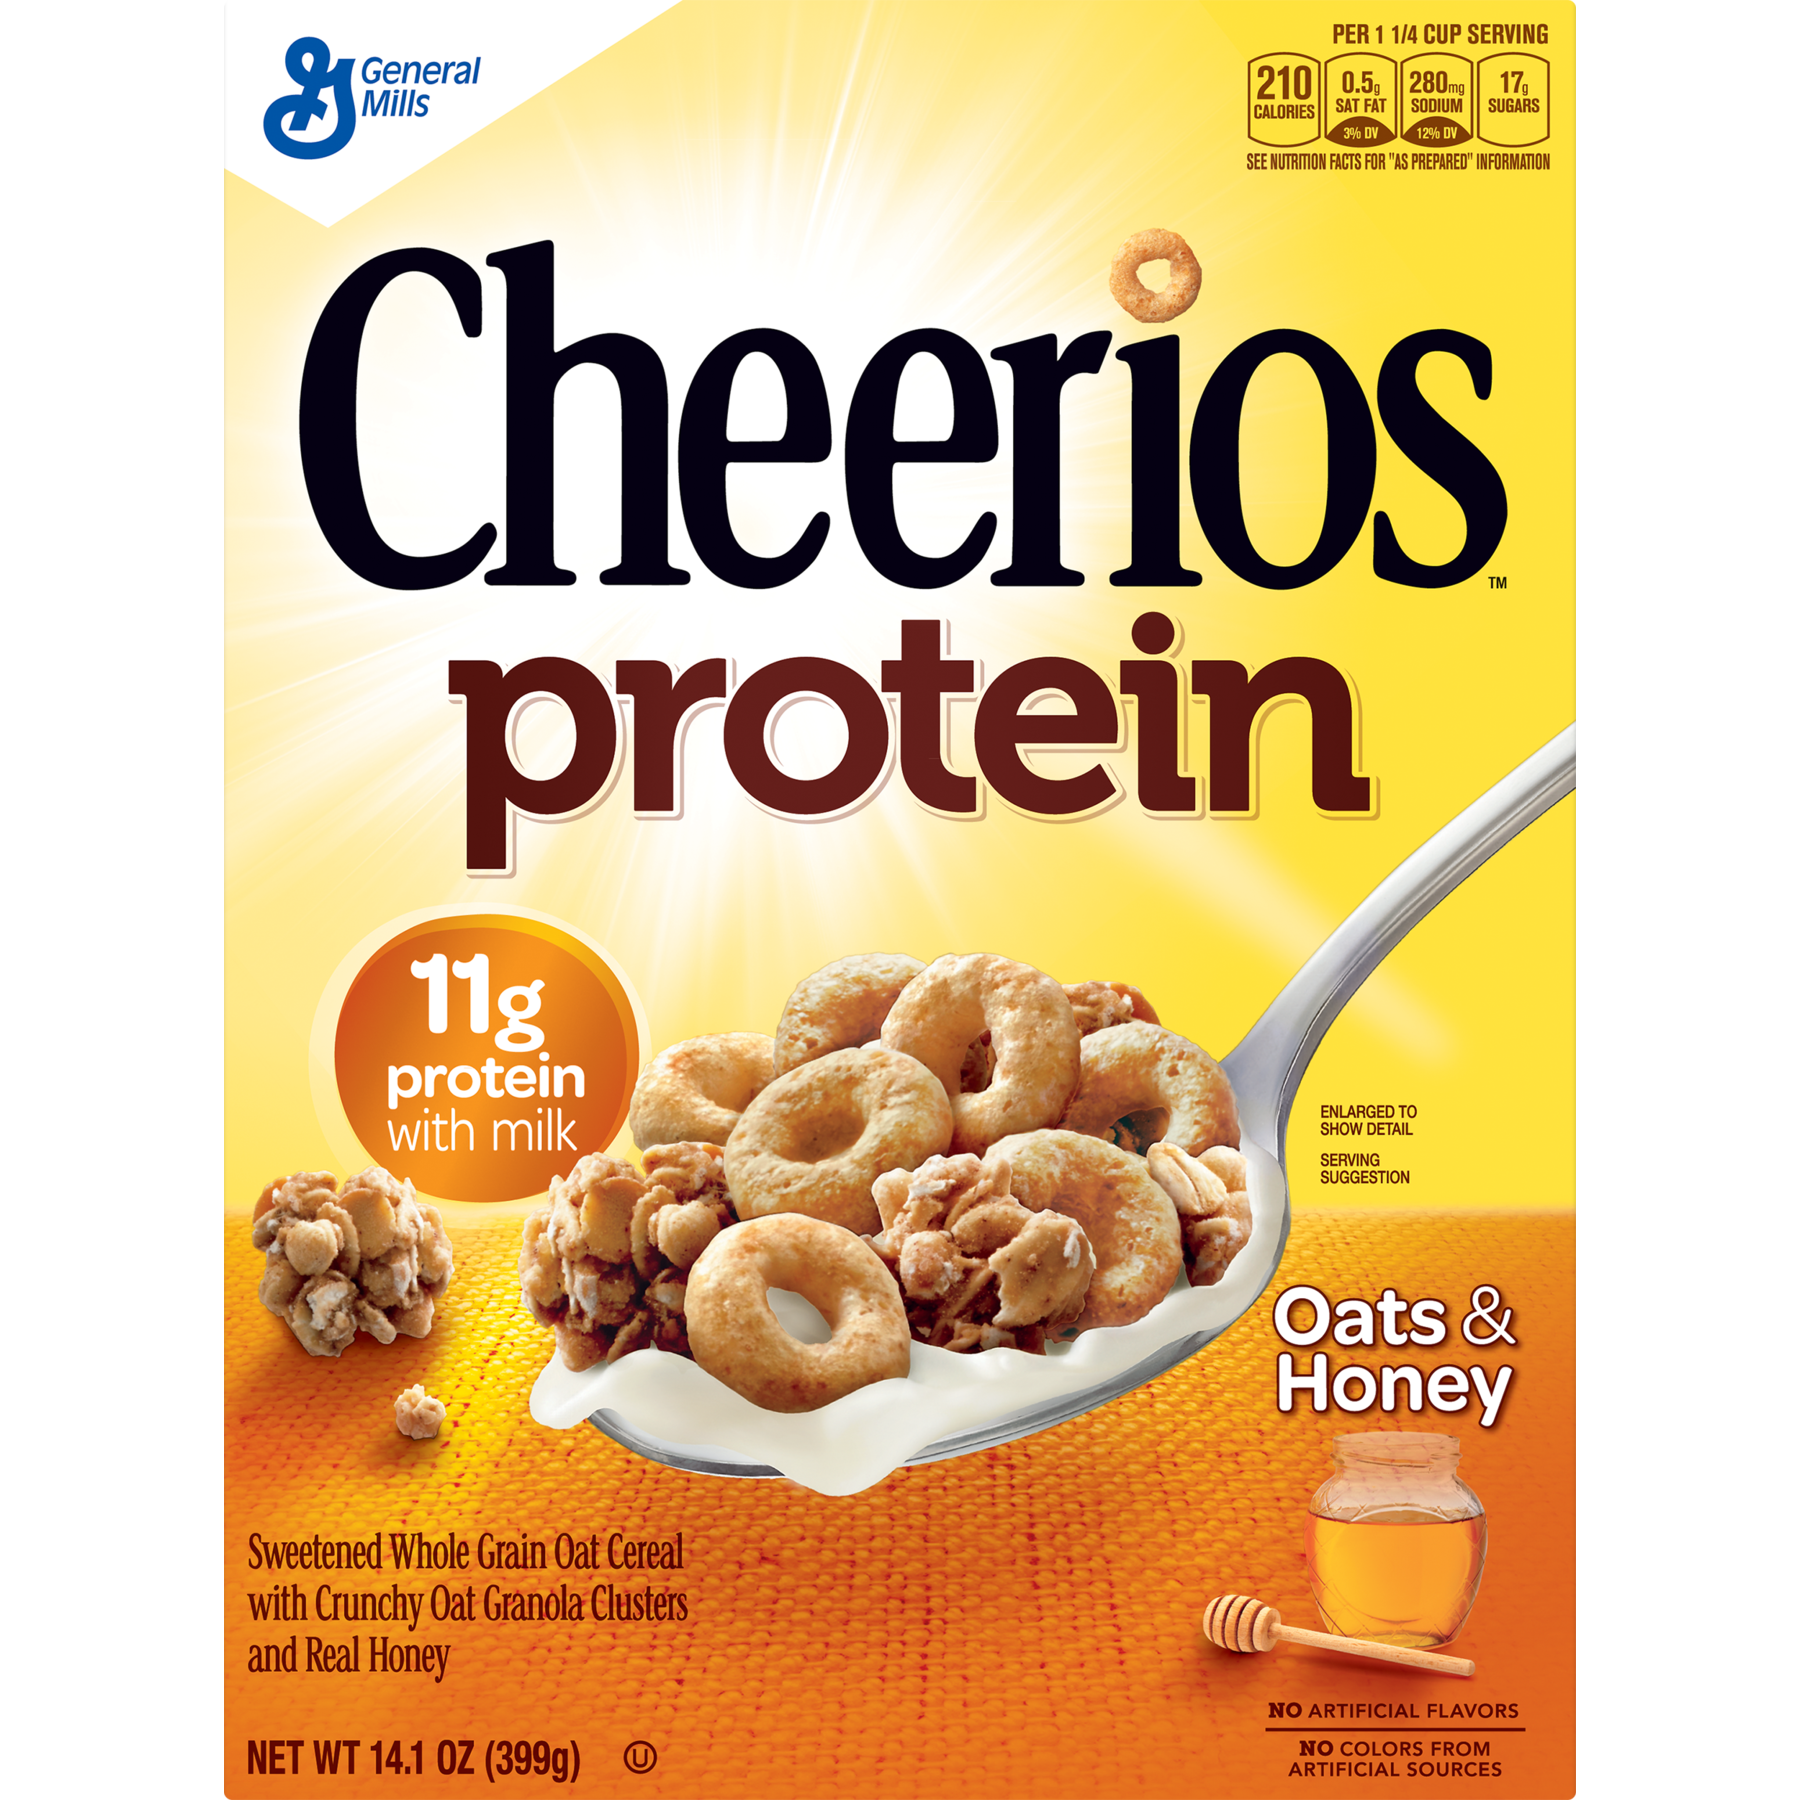 Transparent cereal bland. Cheerios protein oats and